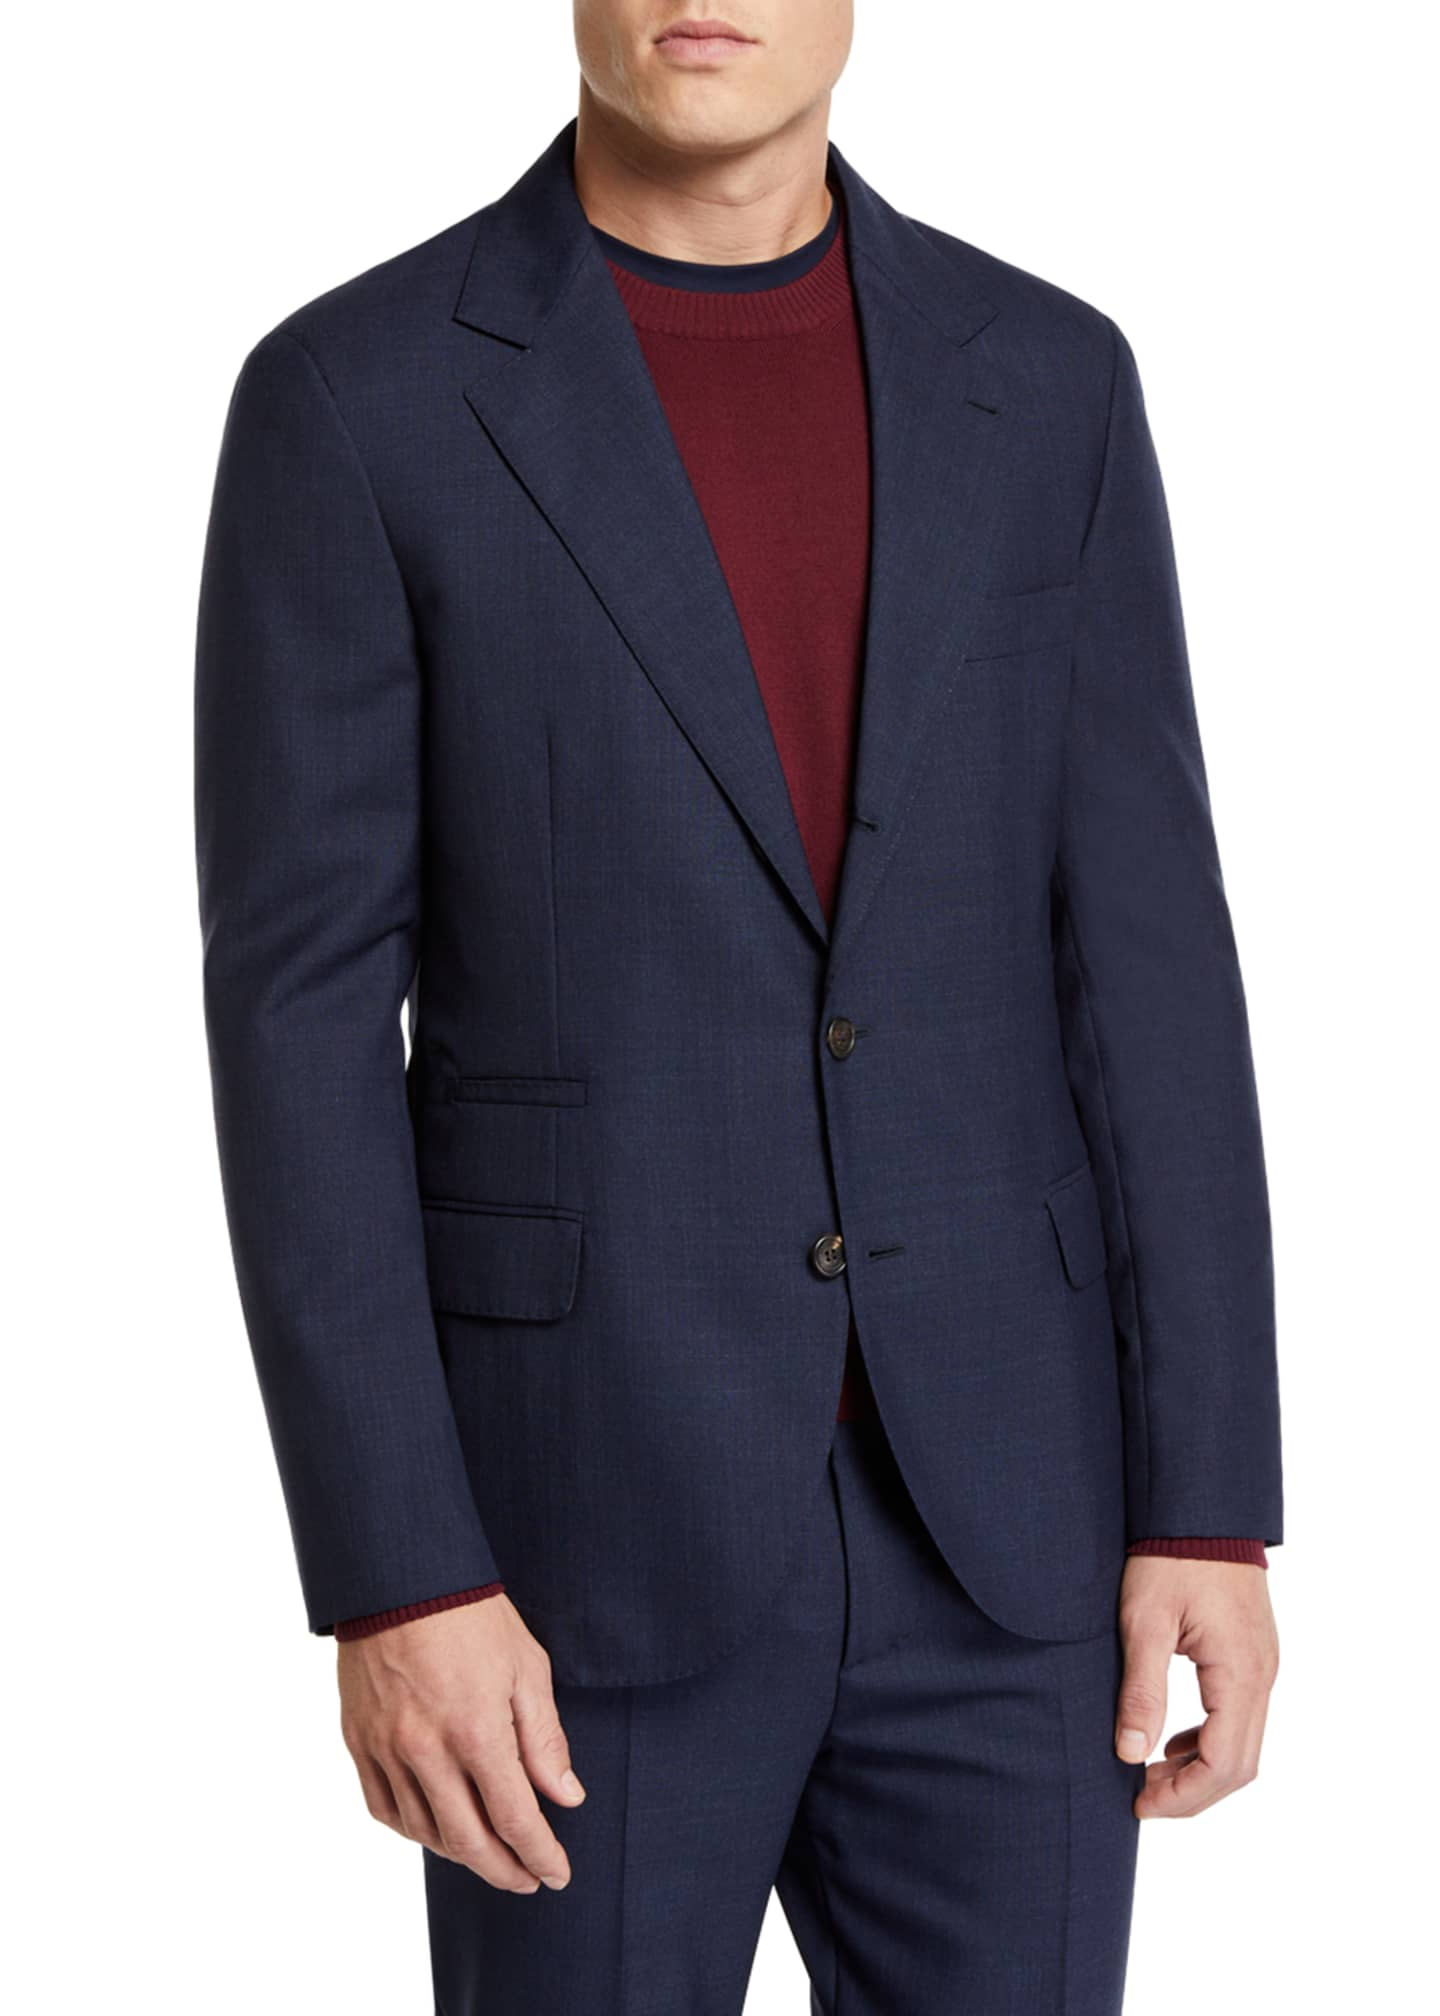 Brunello Cucinelli Men's Basic Rustic Wool Suit